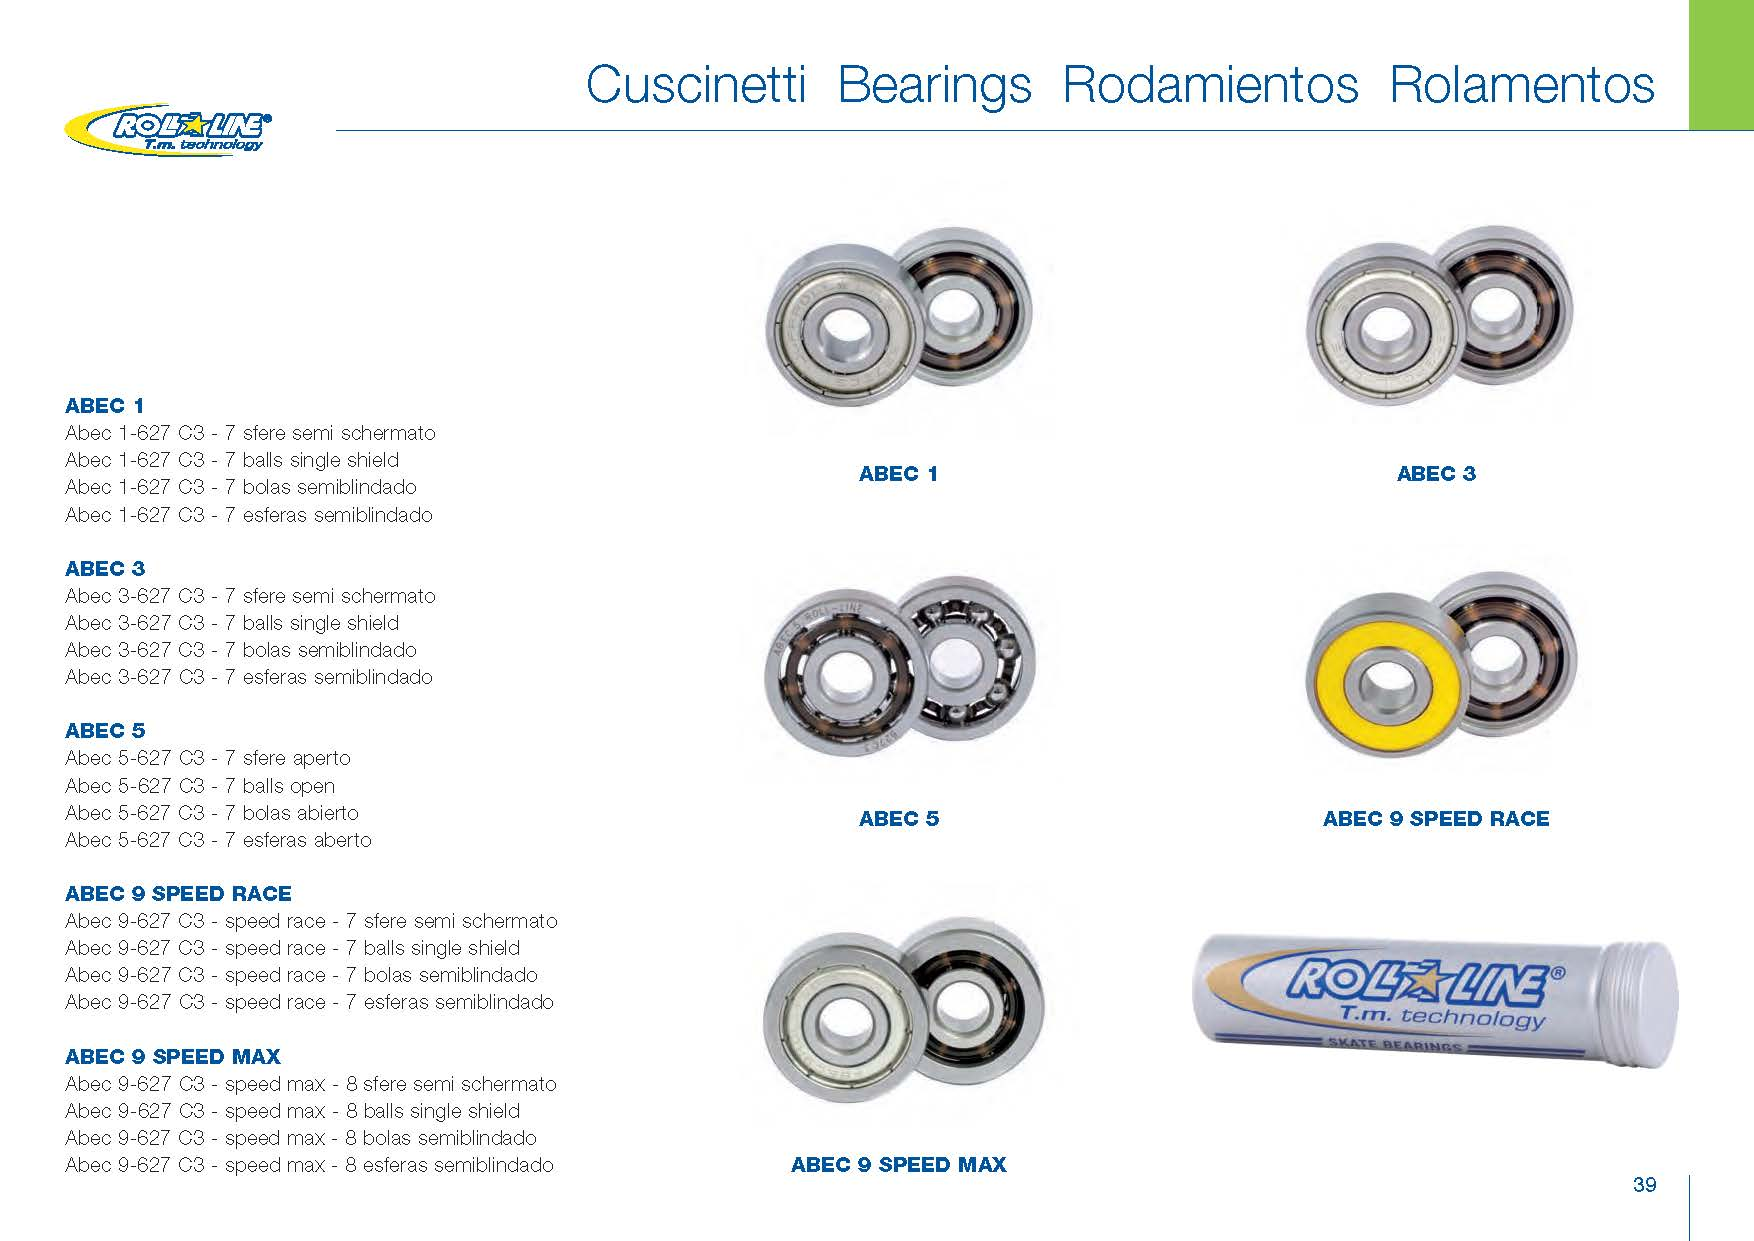 ROLL-LINE_Artistic-Skating_Catalog_Page_39